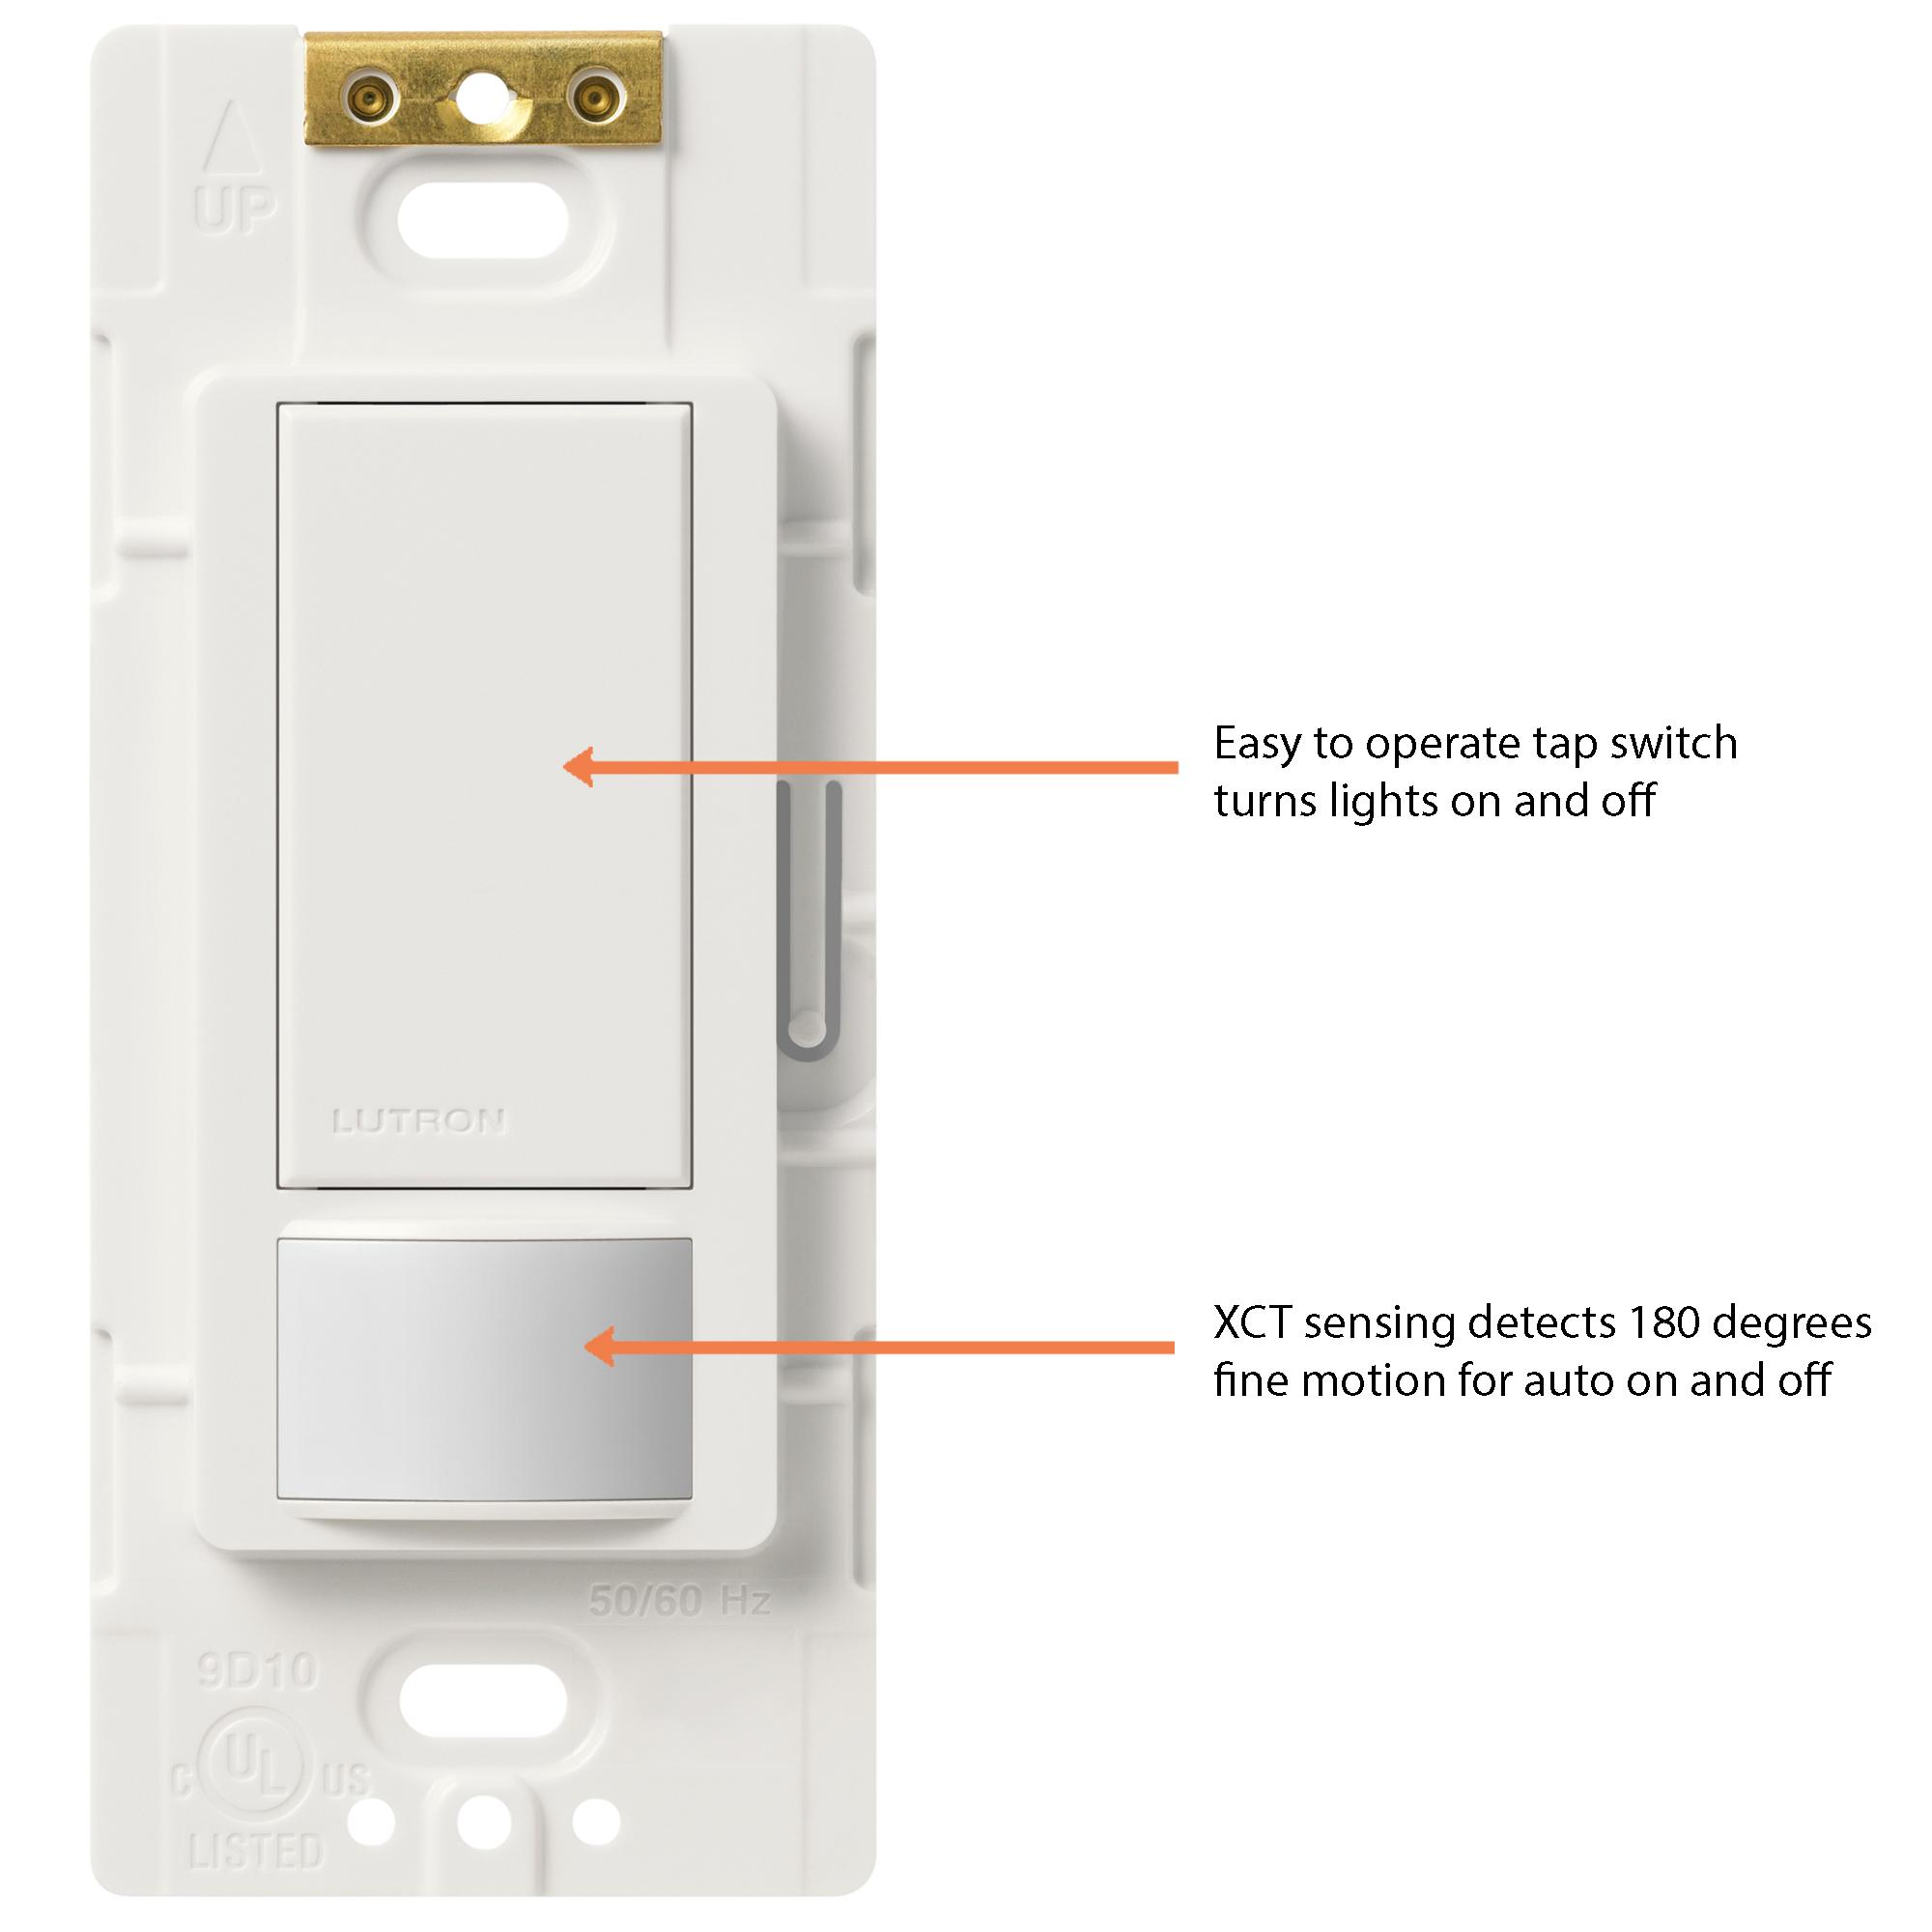 397c5dca 0d34 4427 b75c 597d2b5d6670._CB293281407__SR300300_ lutron maestro sensor switch, 2a, no neutral required, single pole ms-ops5mh-wh wiring diagram at highcare.asia